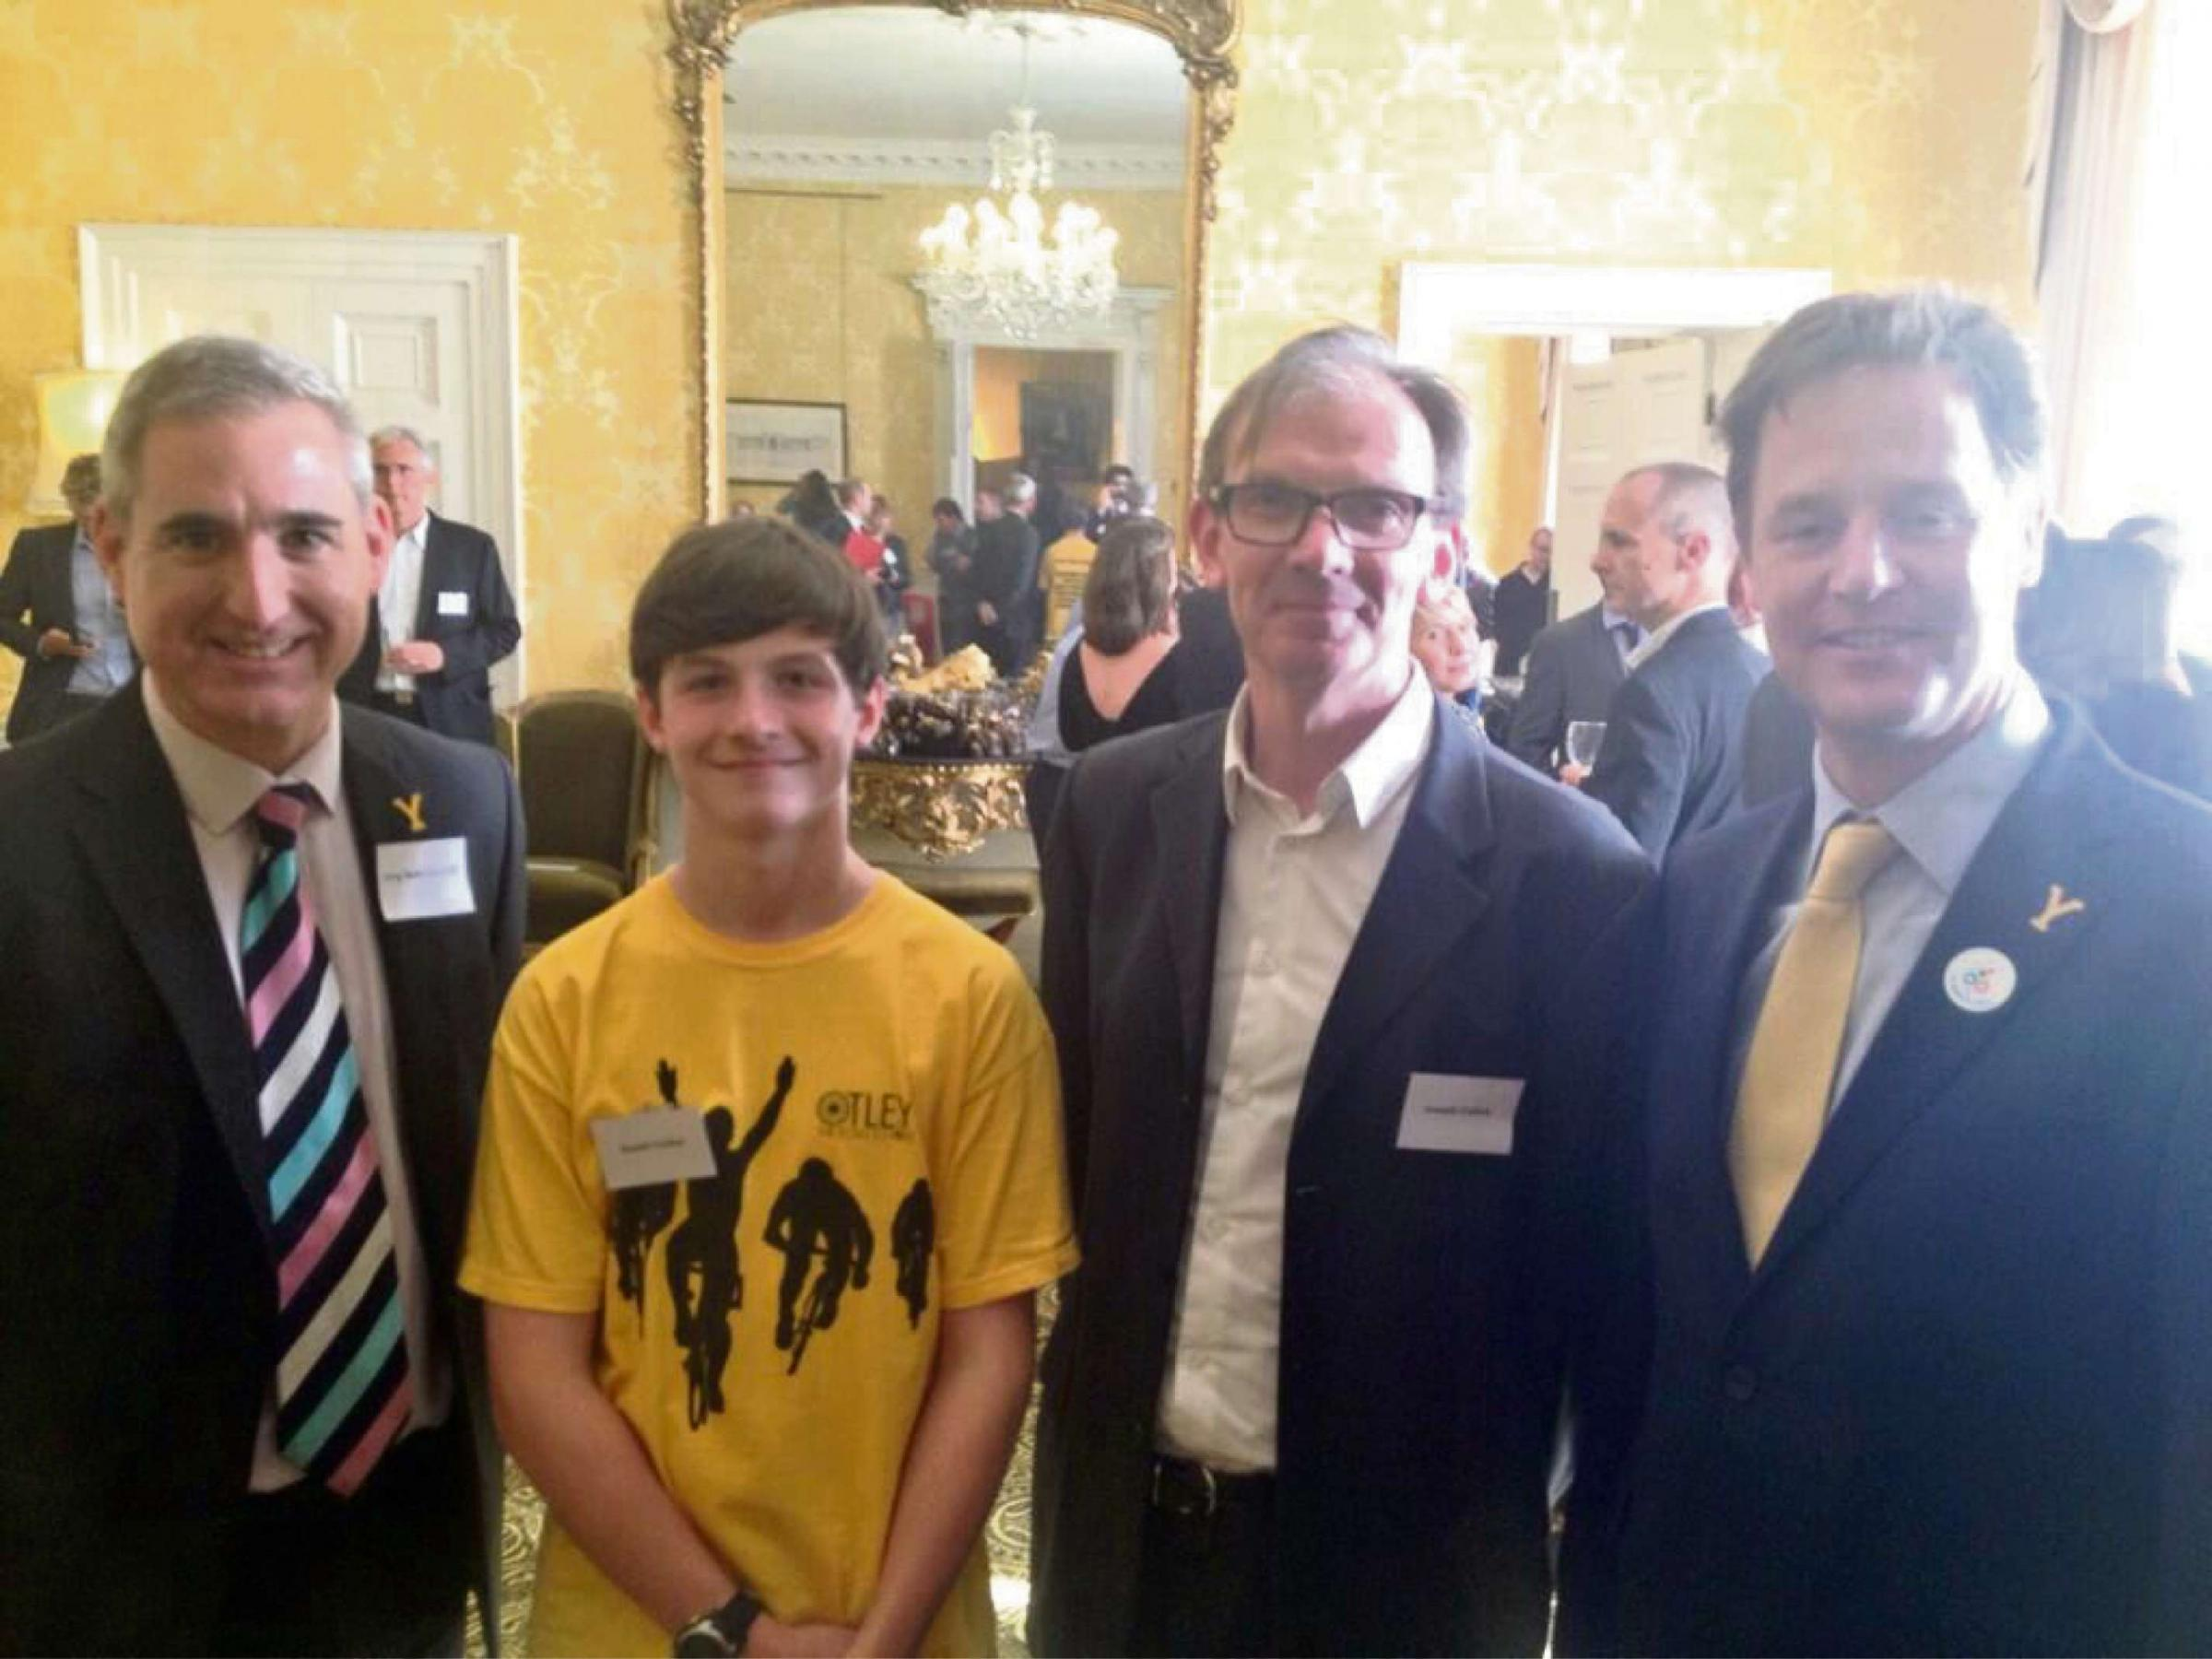 MP for Leeds North West, Greg Mulholland, co-hosts a reception in Westminster to celebrate the Tour de France coming to Yorkshire